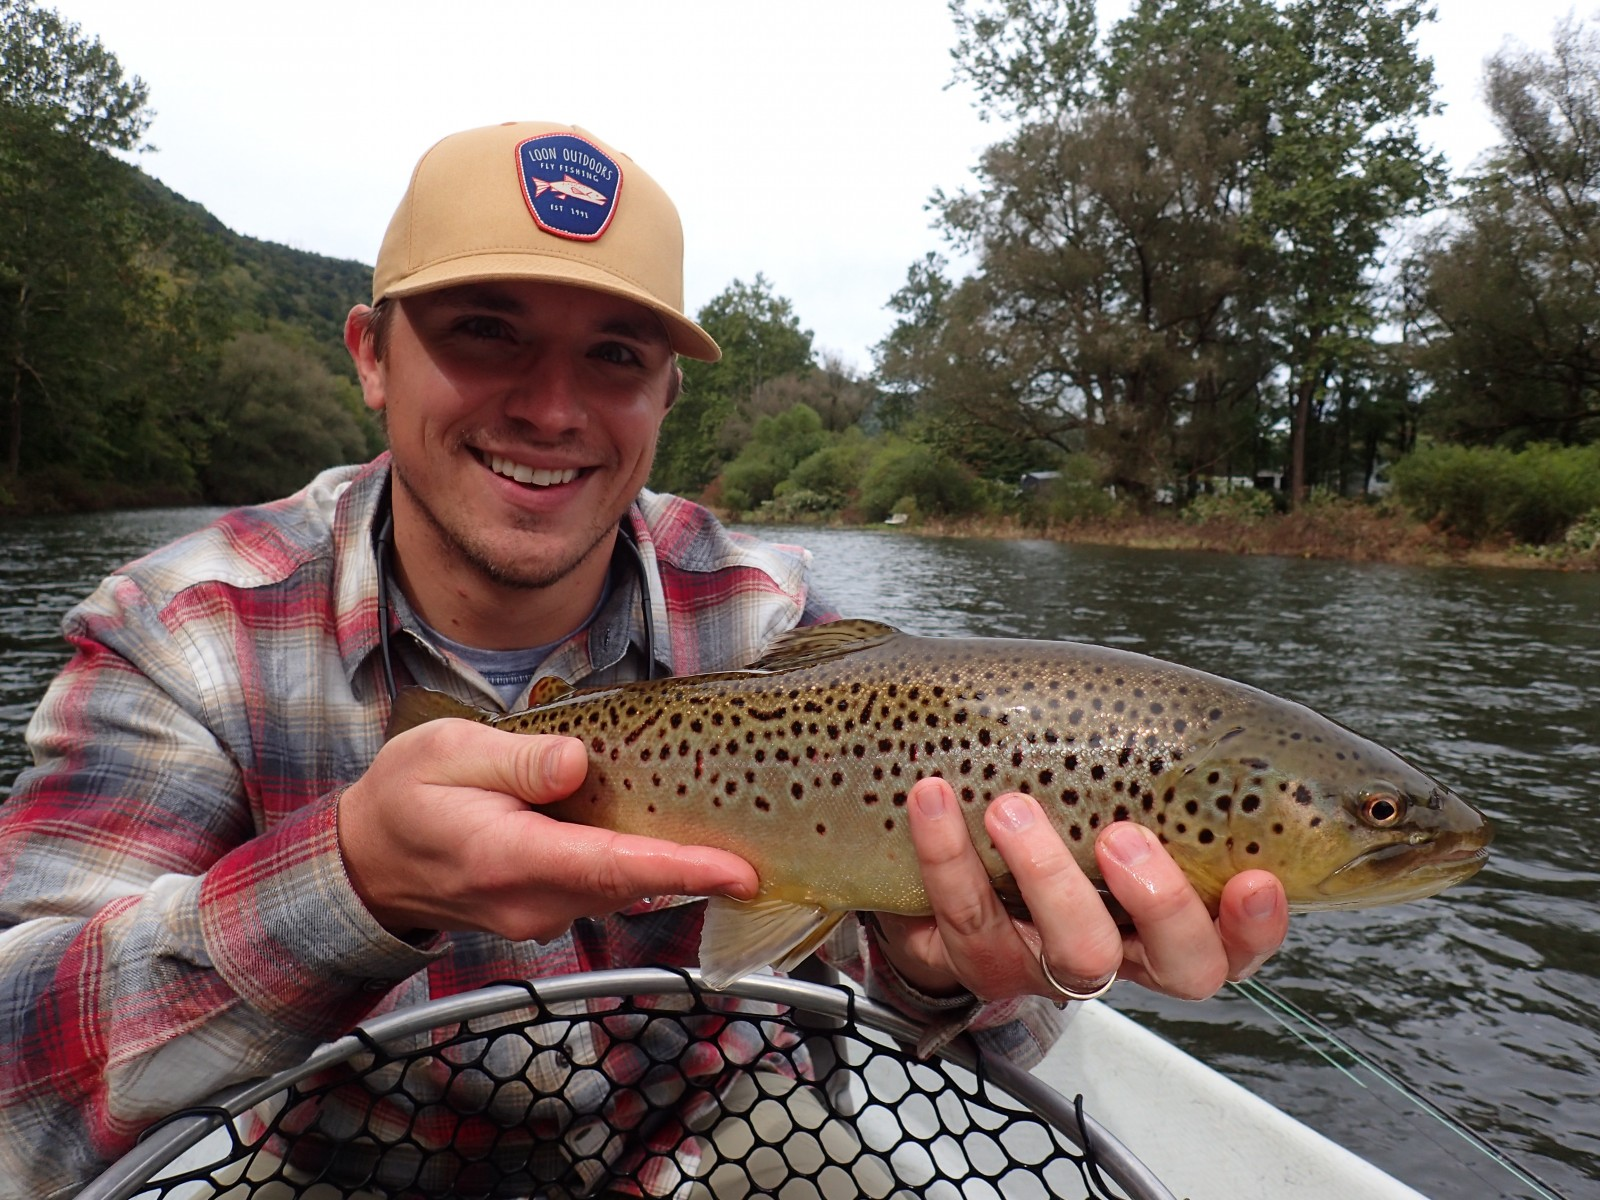 fly fishing the upper delaware river on a guided fly fishing float trip with filingo fly fishing for brown trout